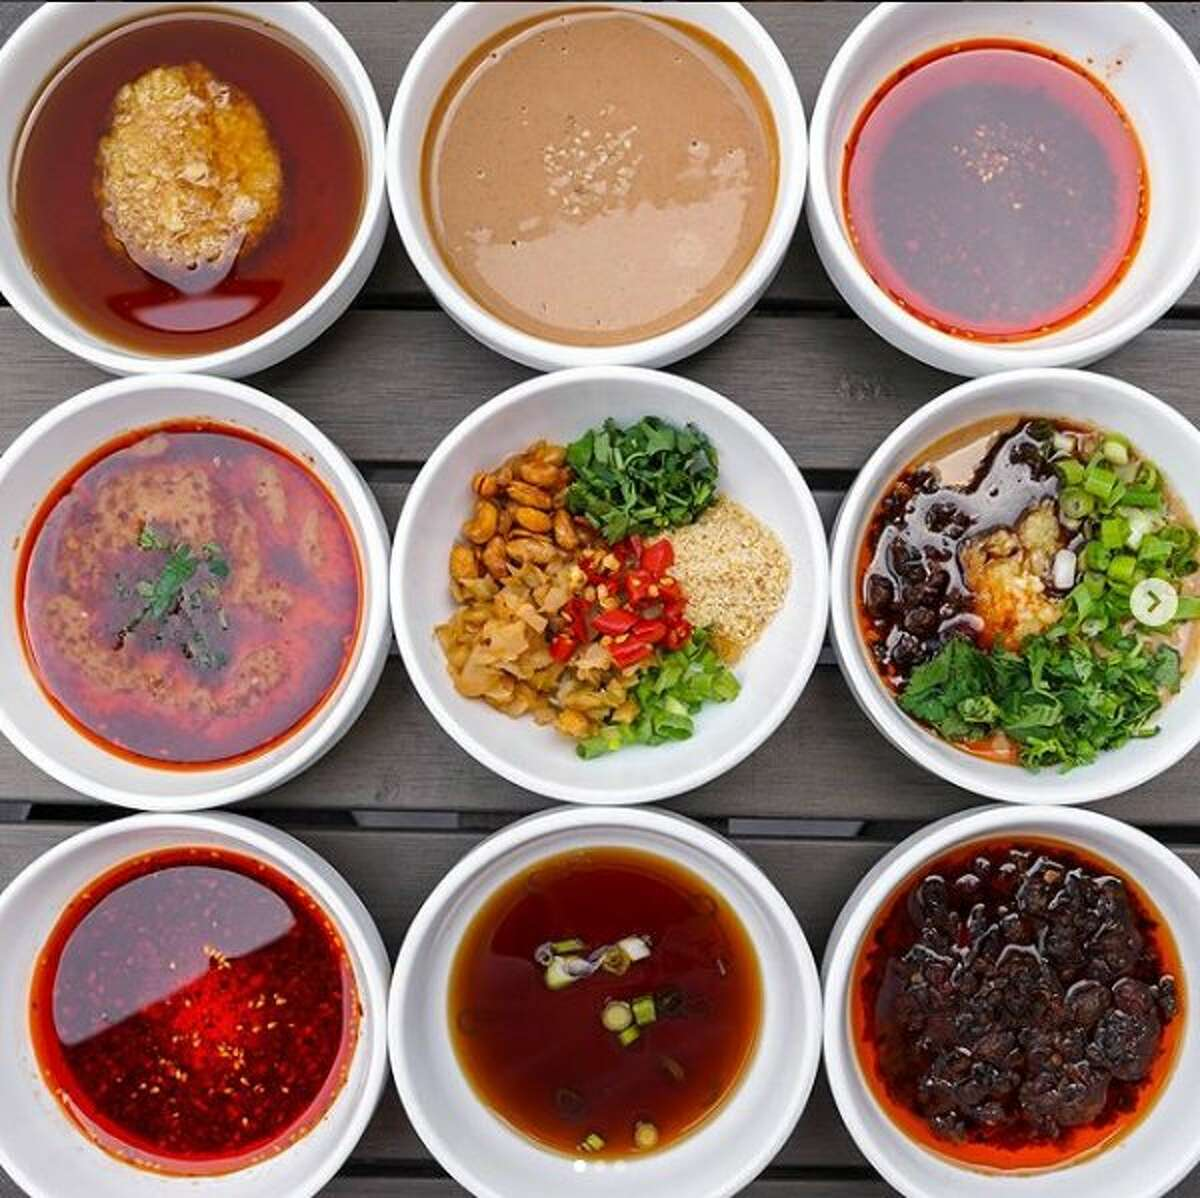 Haidilao is known for offering guests individual hotpot dishes with a variety of broth flavors, such as the Sichuan style spicy broth, vegetarian mushroom broth and popular tangy tomato broth; as well as various meats, such as lamb, beef and pork.